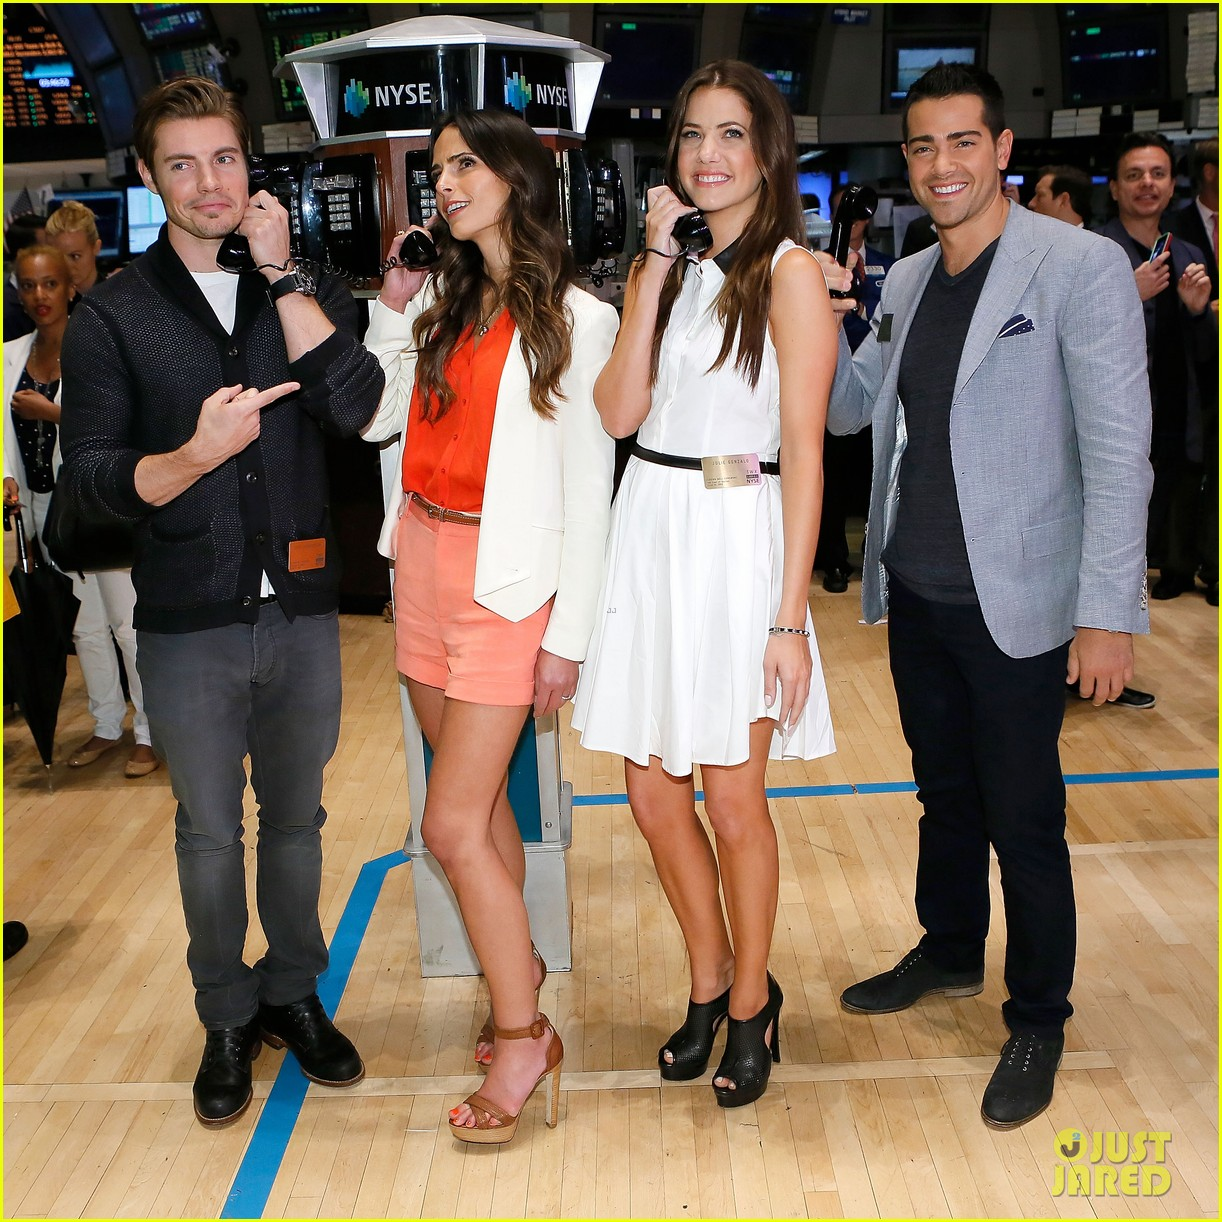 josh henderson and jenna dewan dating Jenna dewan tatum in a school uniform looking seriously hot, it is wrong to say but it is one of the things which 'the jerk theory' trades on, that fantasy the other thing is the youthful appeal of josh henderson whether it is being the treat them mean keep them clean bad boy or the more sensitive, caring one.